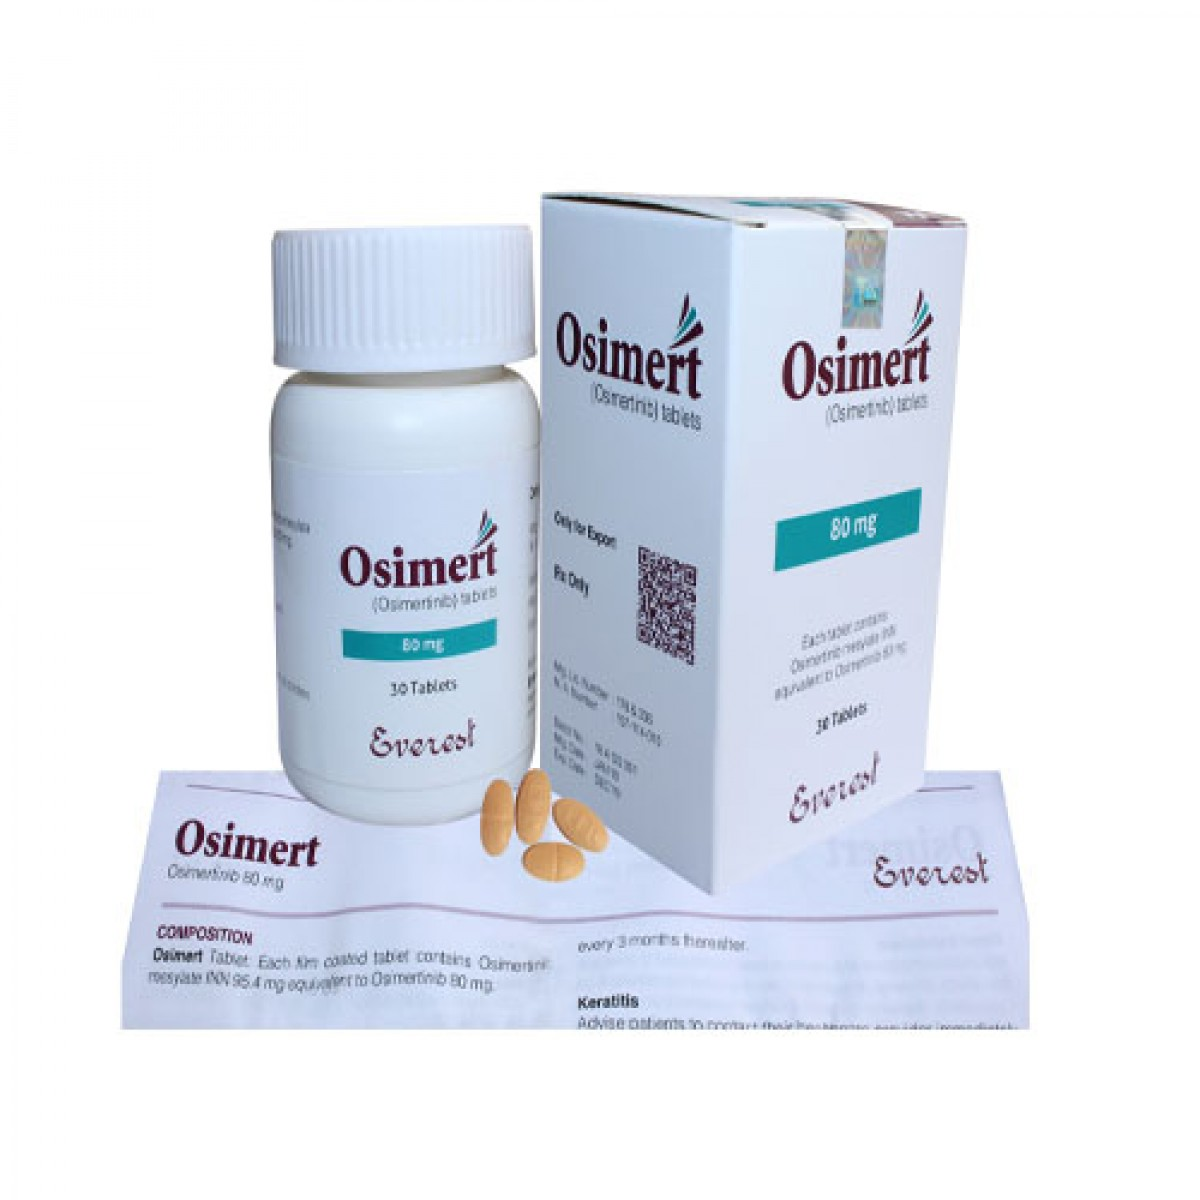 Osimertinib  Osimert( Everest ) 奥希替尼 奥西替尼